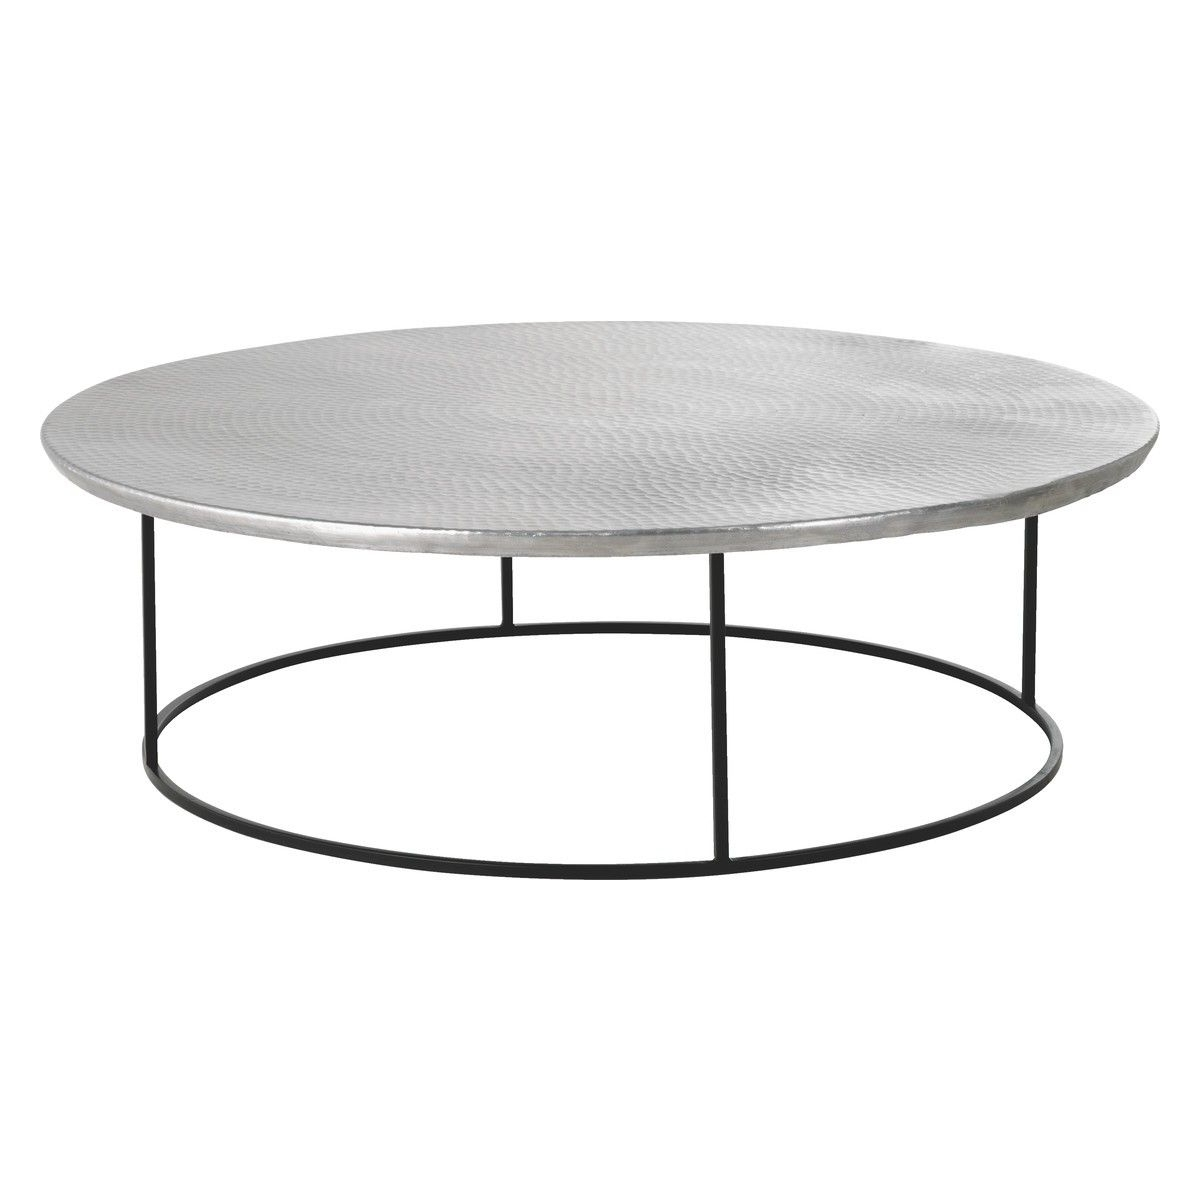 Orrico Hammered Aluminium Coffee Table With Black Frame (View 16 of 20)